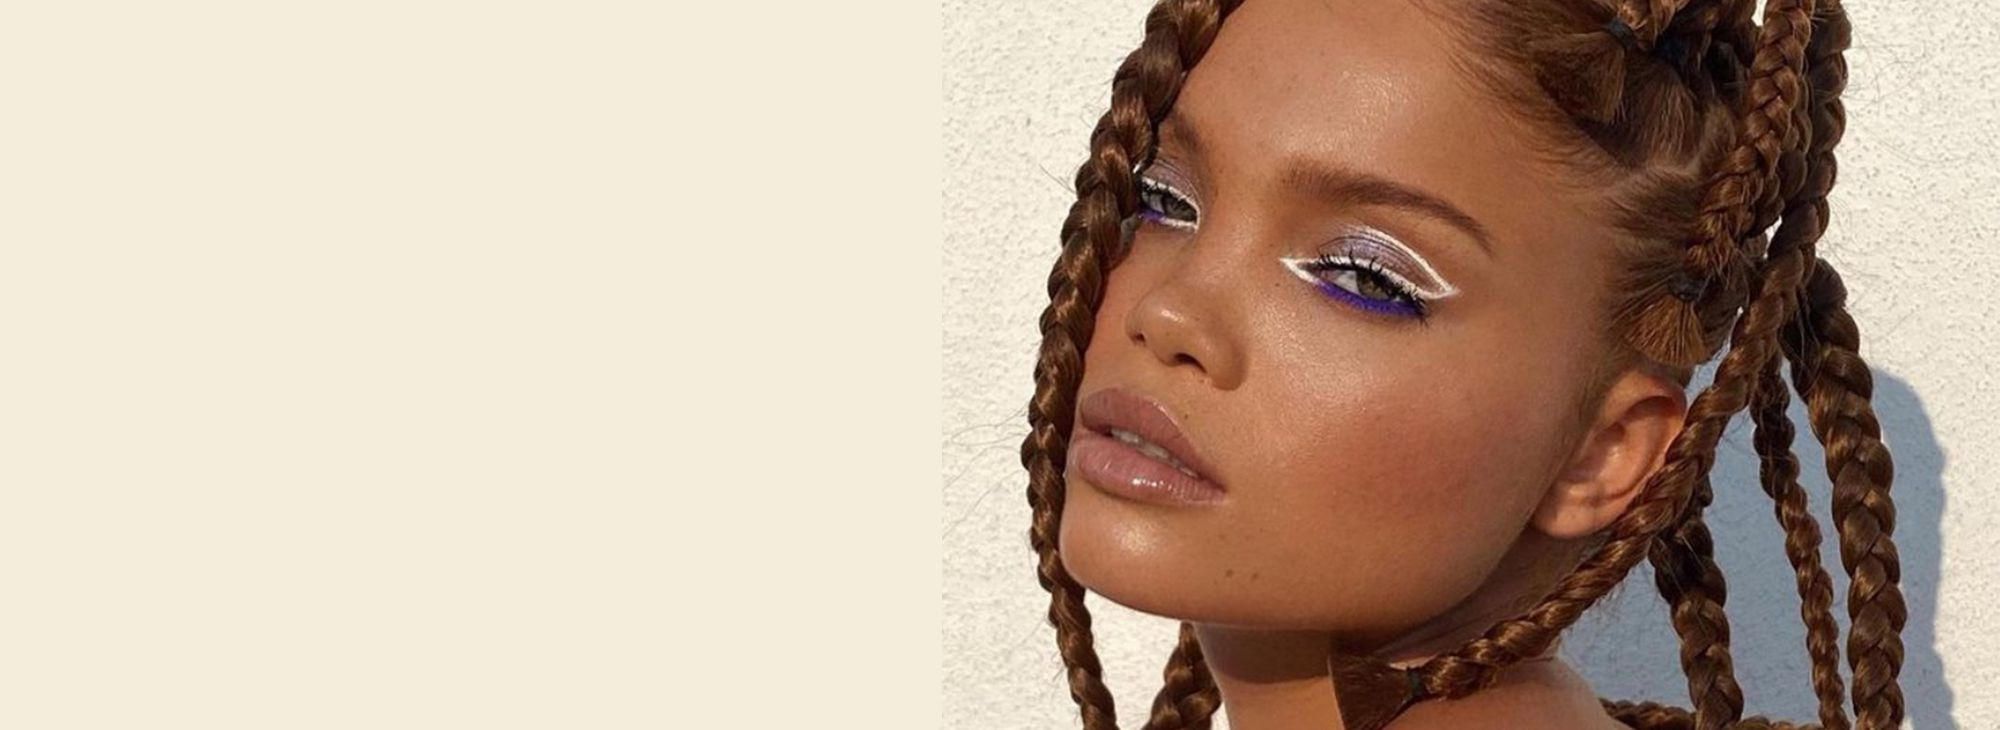 woman with box braids and graphic eyeliner